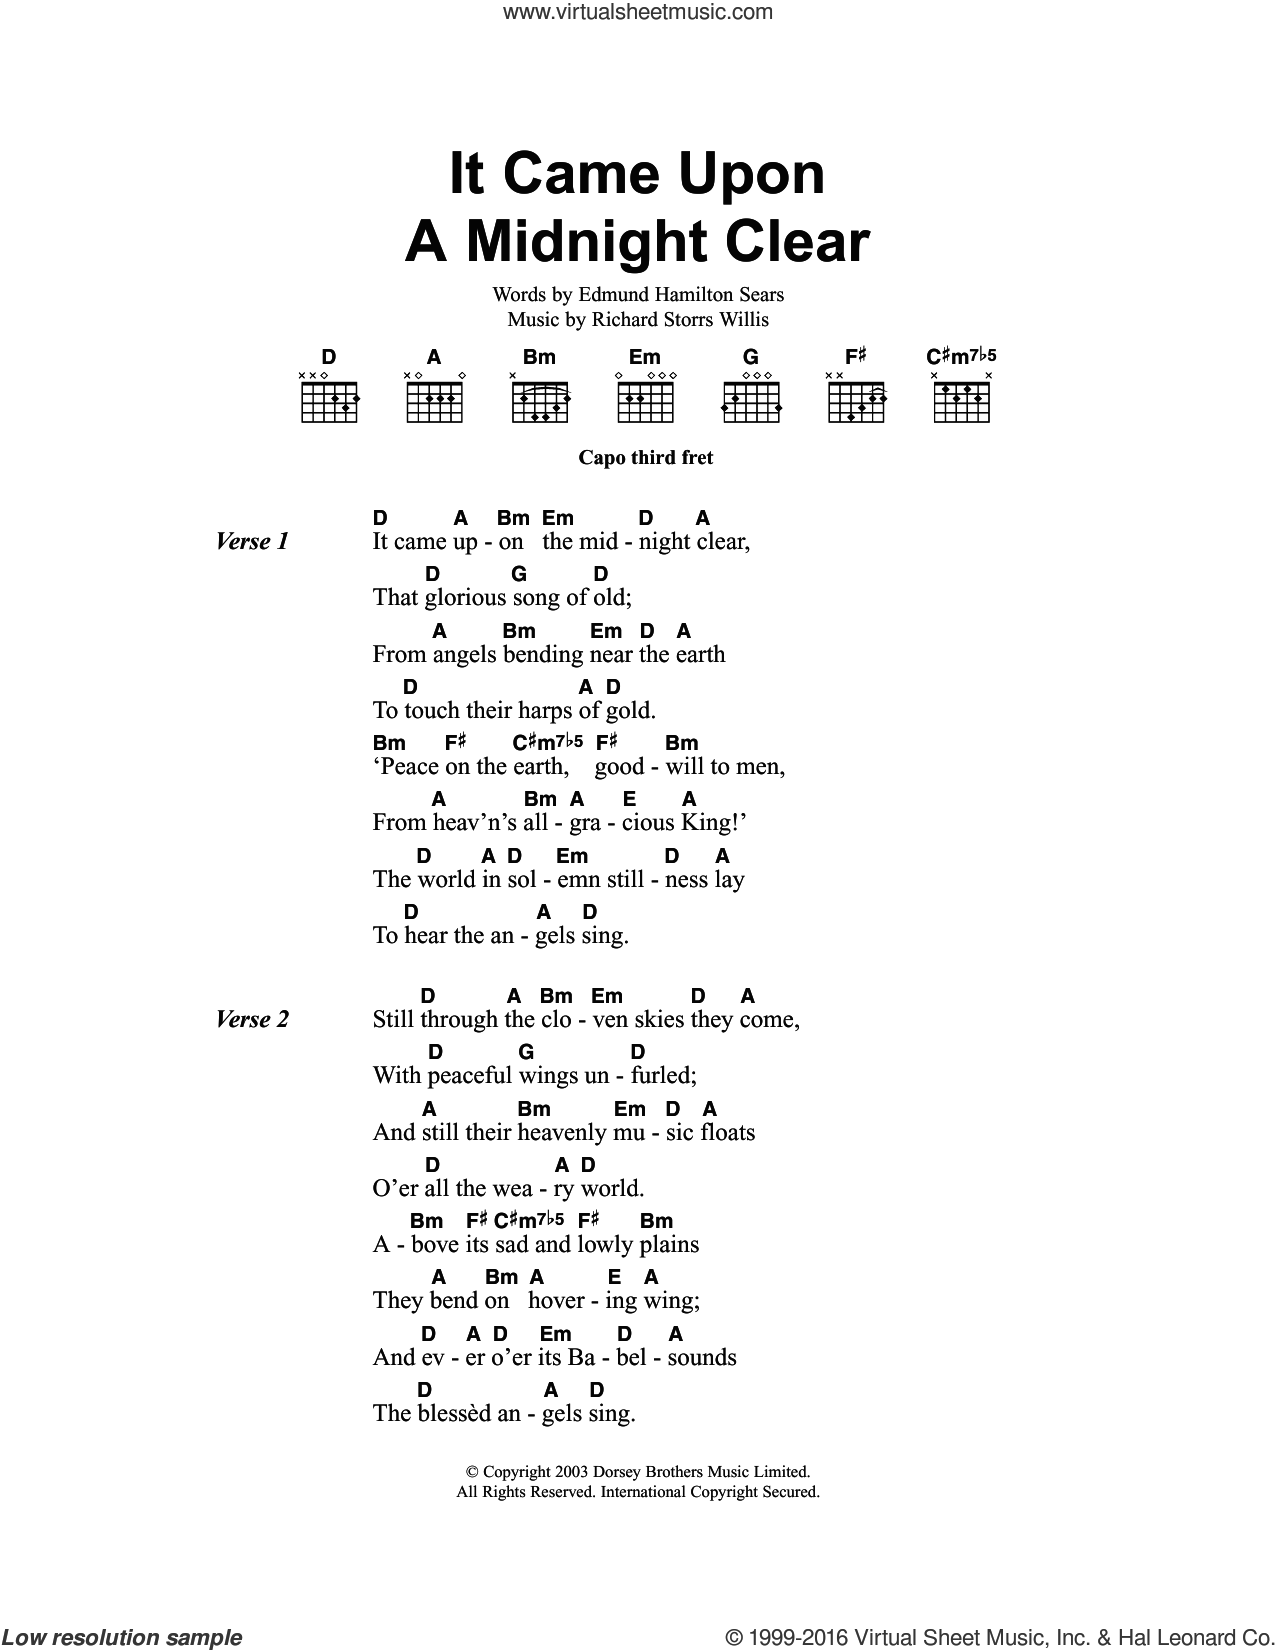 It Came Upon The Midnight Clear sheet music for guitar (chords) by Richard Storrs Willis, Miscellaneous and Edmund Hamilton Sears, Christmas carol score, intermediate guitar (chords). Score Image Preview.